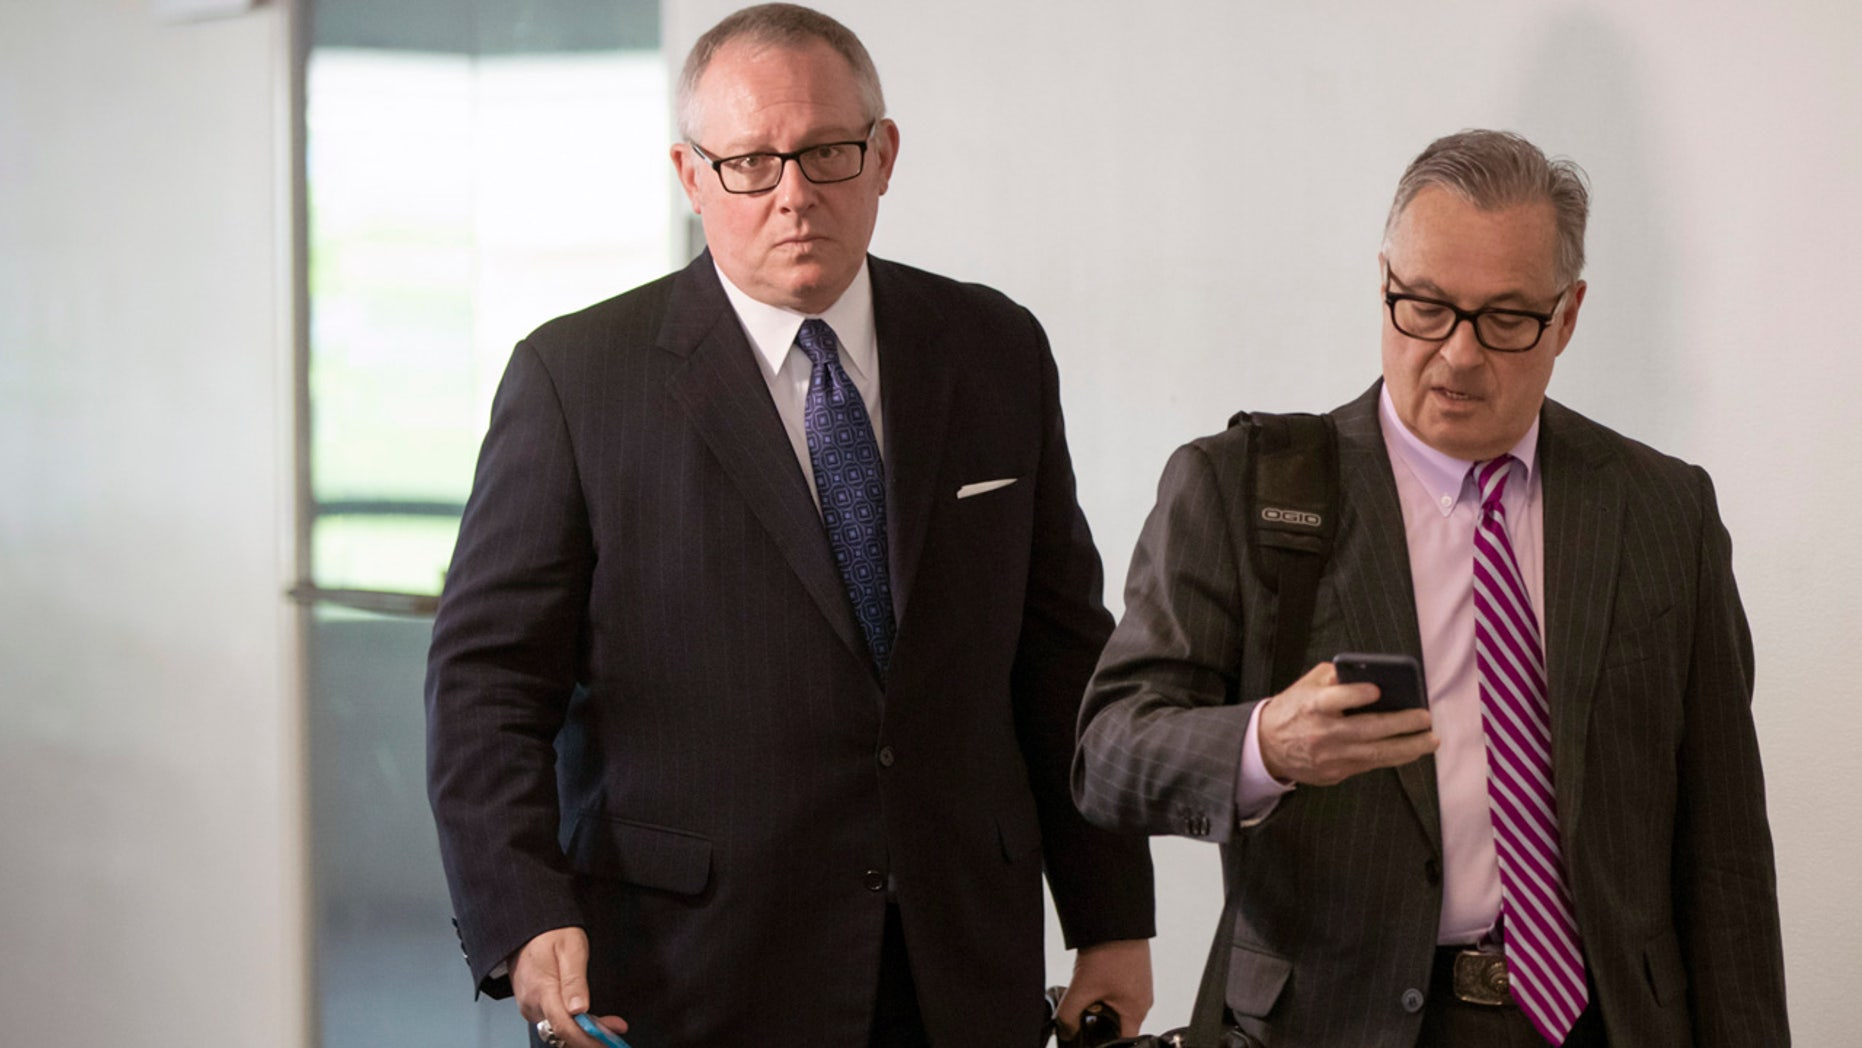 Michael Caputo, left, and attorney Dennis Vacco leave Caputo's interview with Senate Intelligence Committee staff on Capitol Hill in Washington Tuesday.